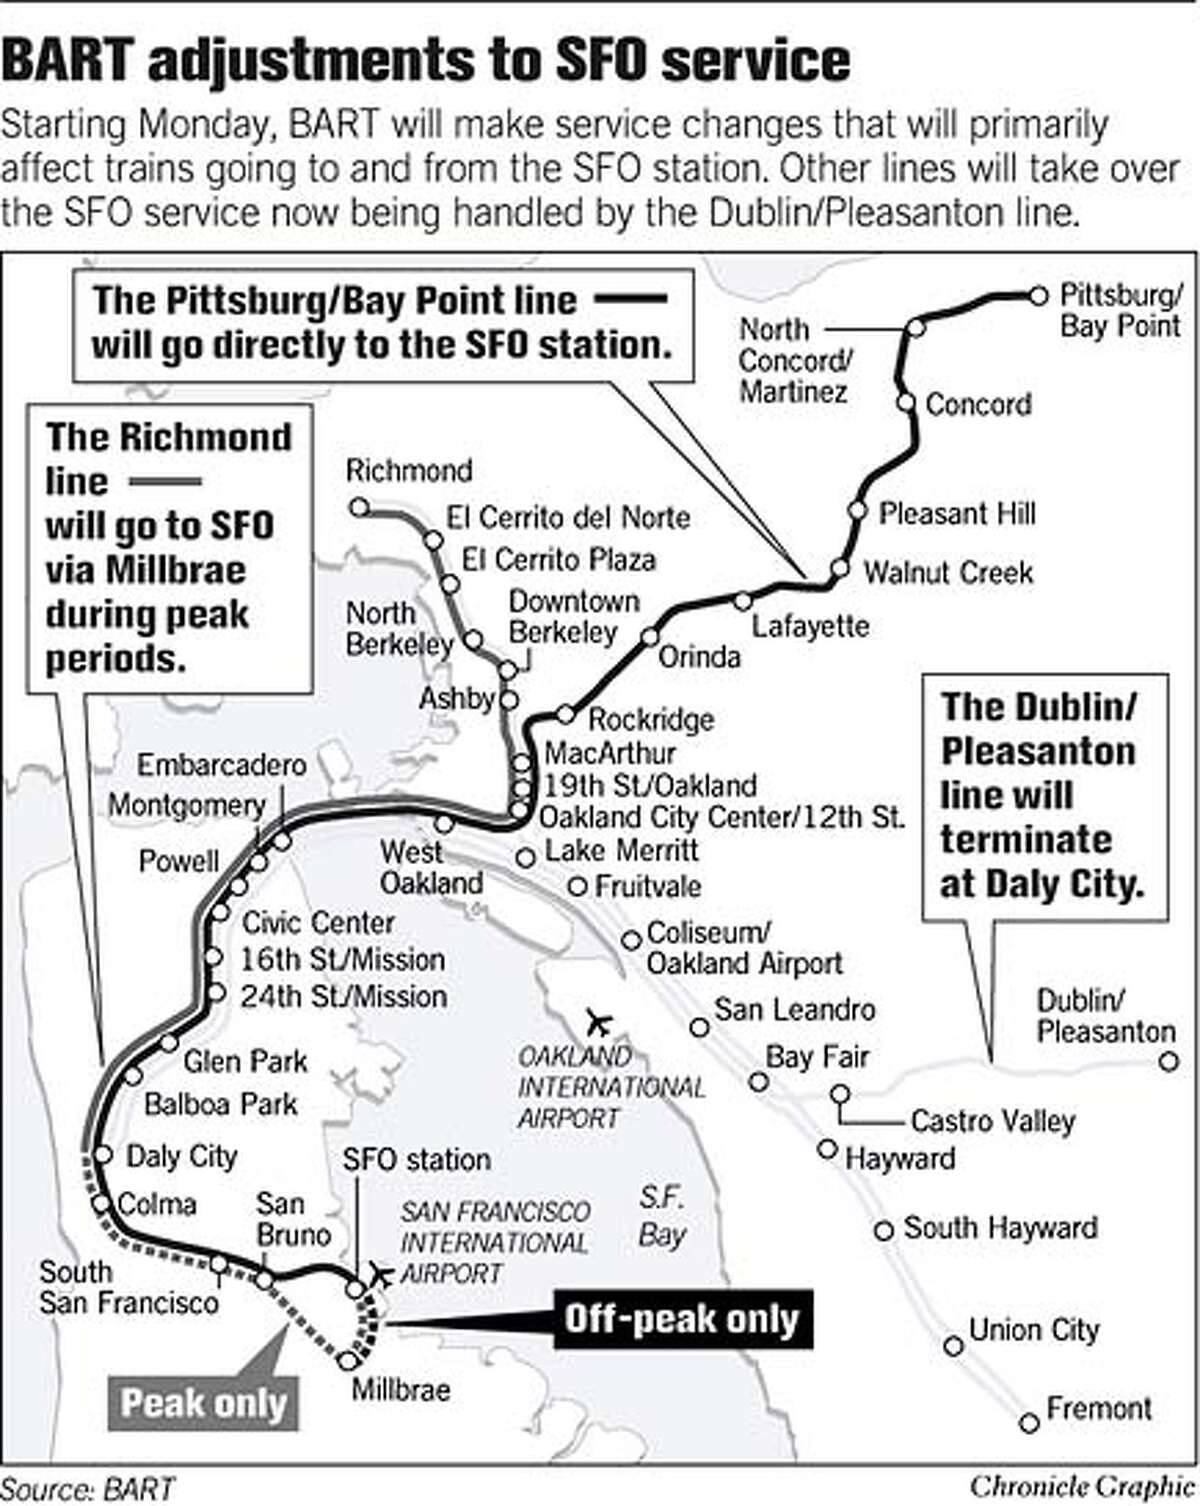 BART Adjustments to SFO Service. Chronicle Graphic